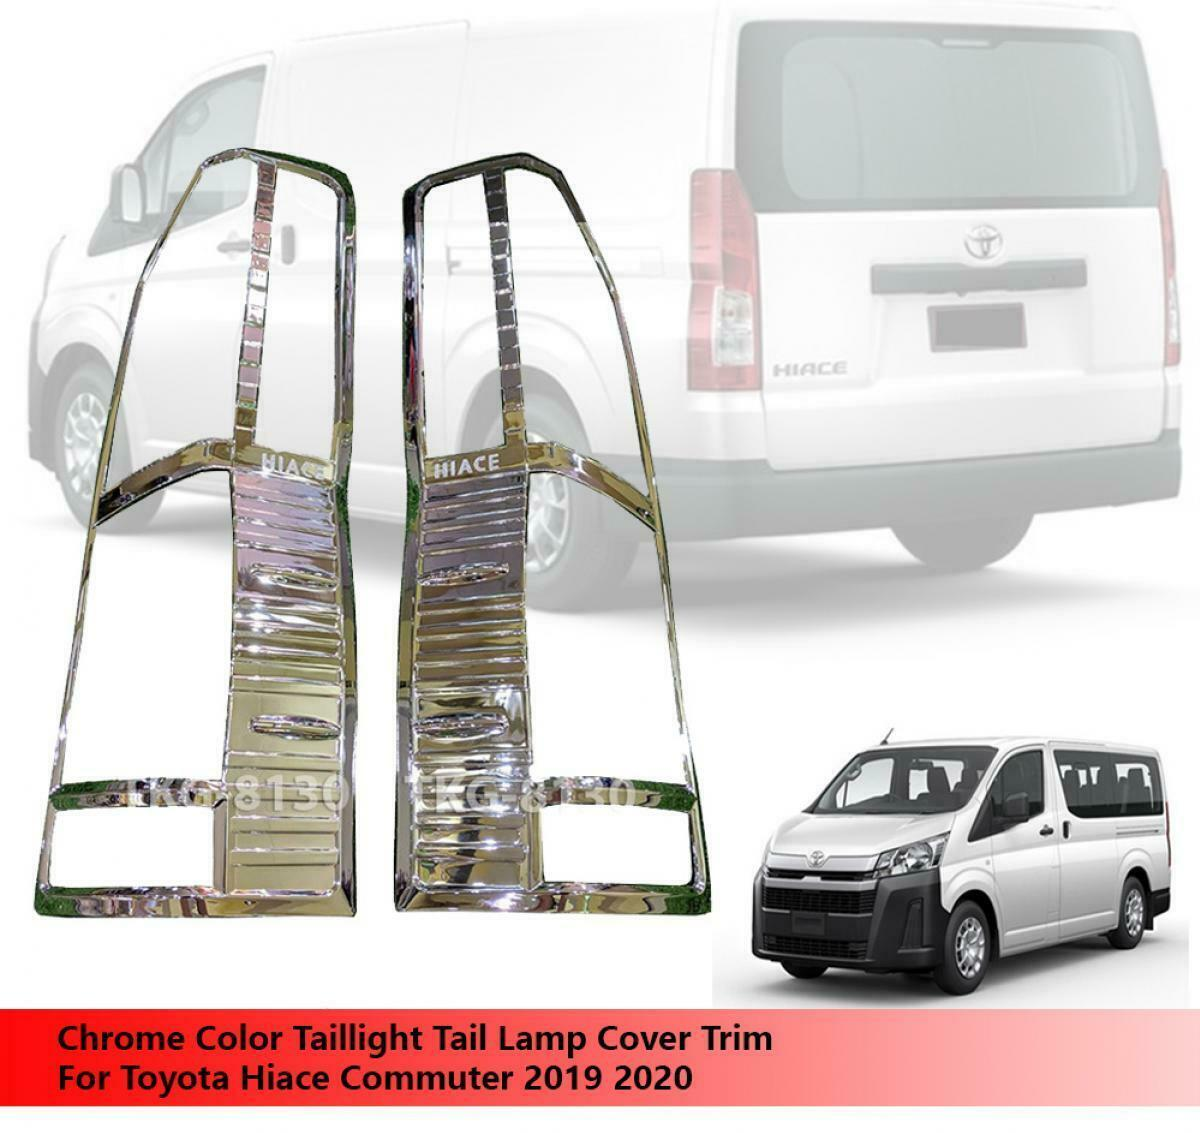 Chrome Tail Lamp Taillight Cover Trim For Toyota Hiace Commuter 2019 2020 - $68.26